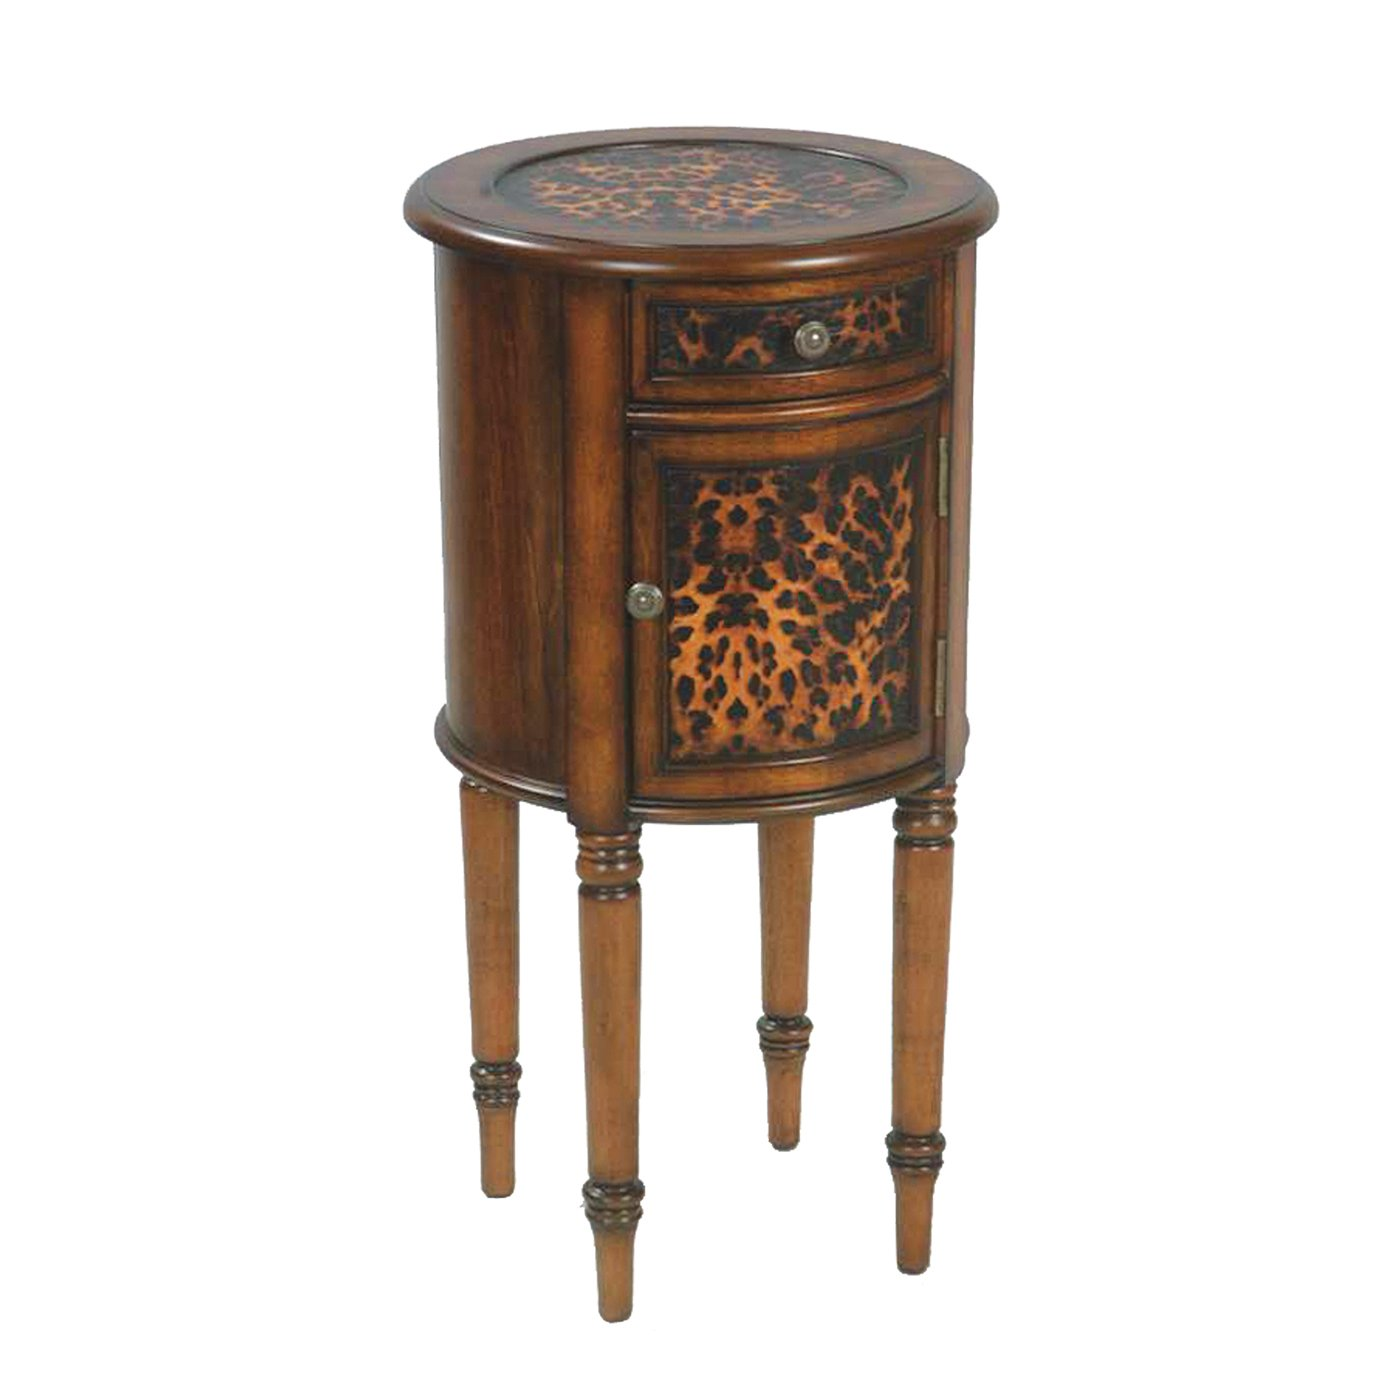 metal drum accent table pottery barn nesting tables sterling industries leopard end atg frog vintage nightstands outdoor buffet cabinet lawn furniture oak wood side glass center